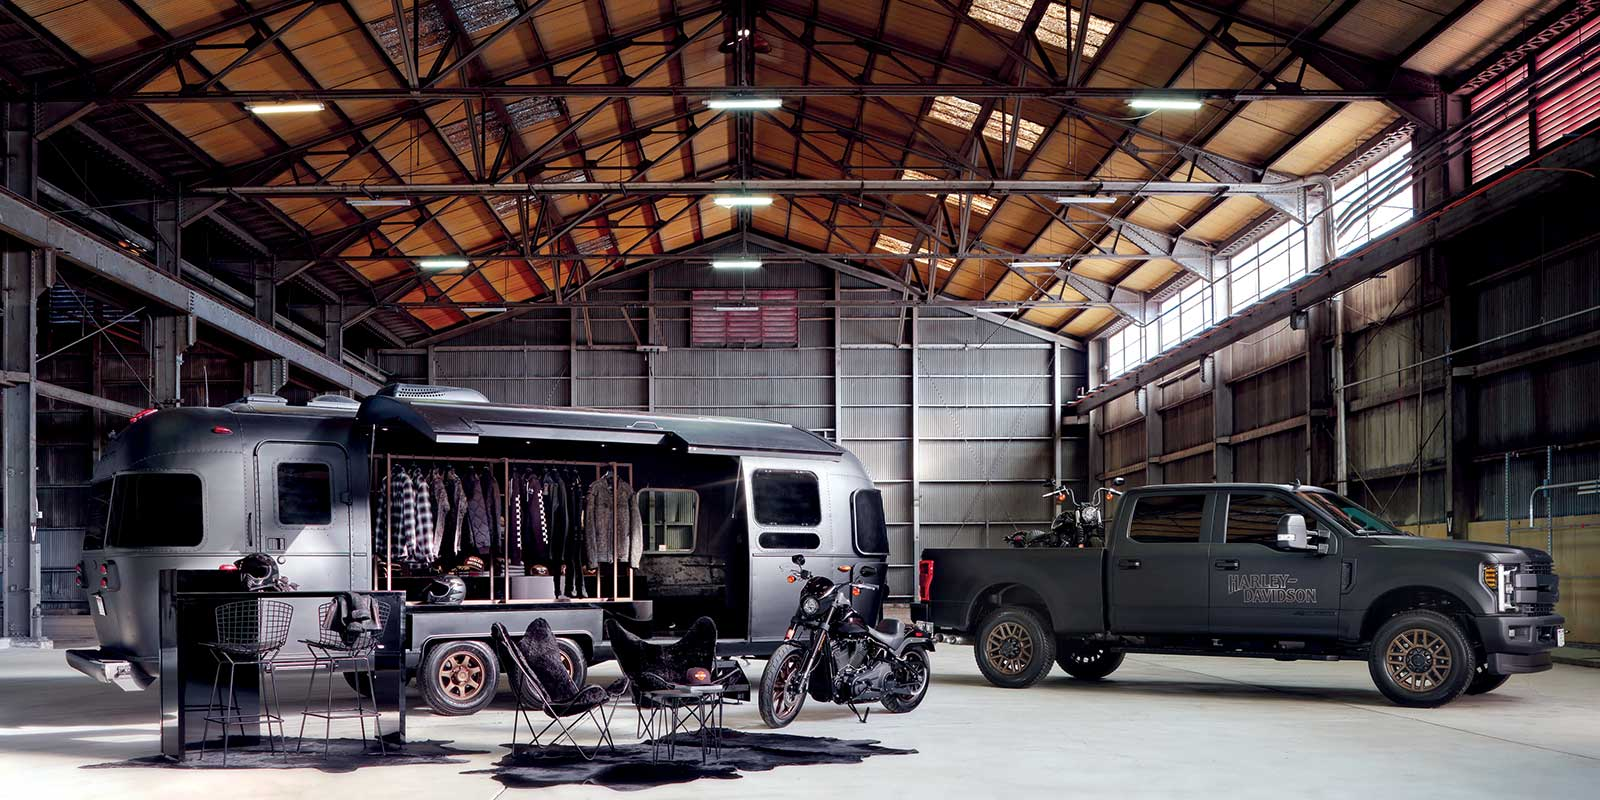 OPEN CONCEPT AIRSTREAM FOR POP-UP RETAIL